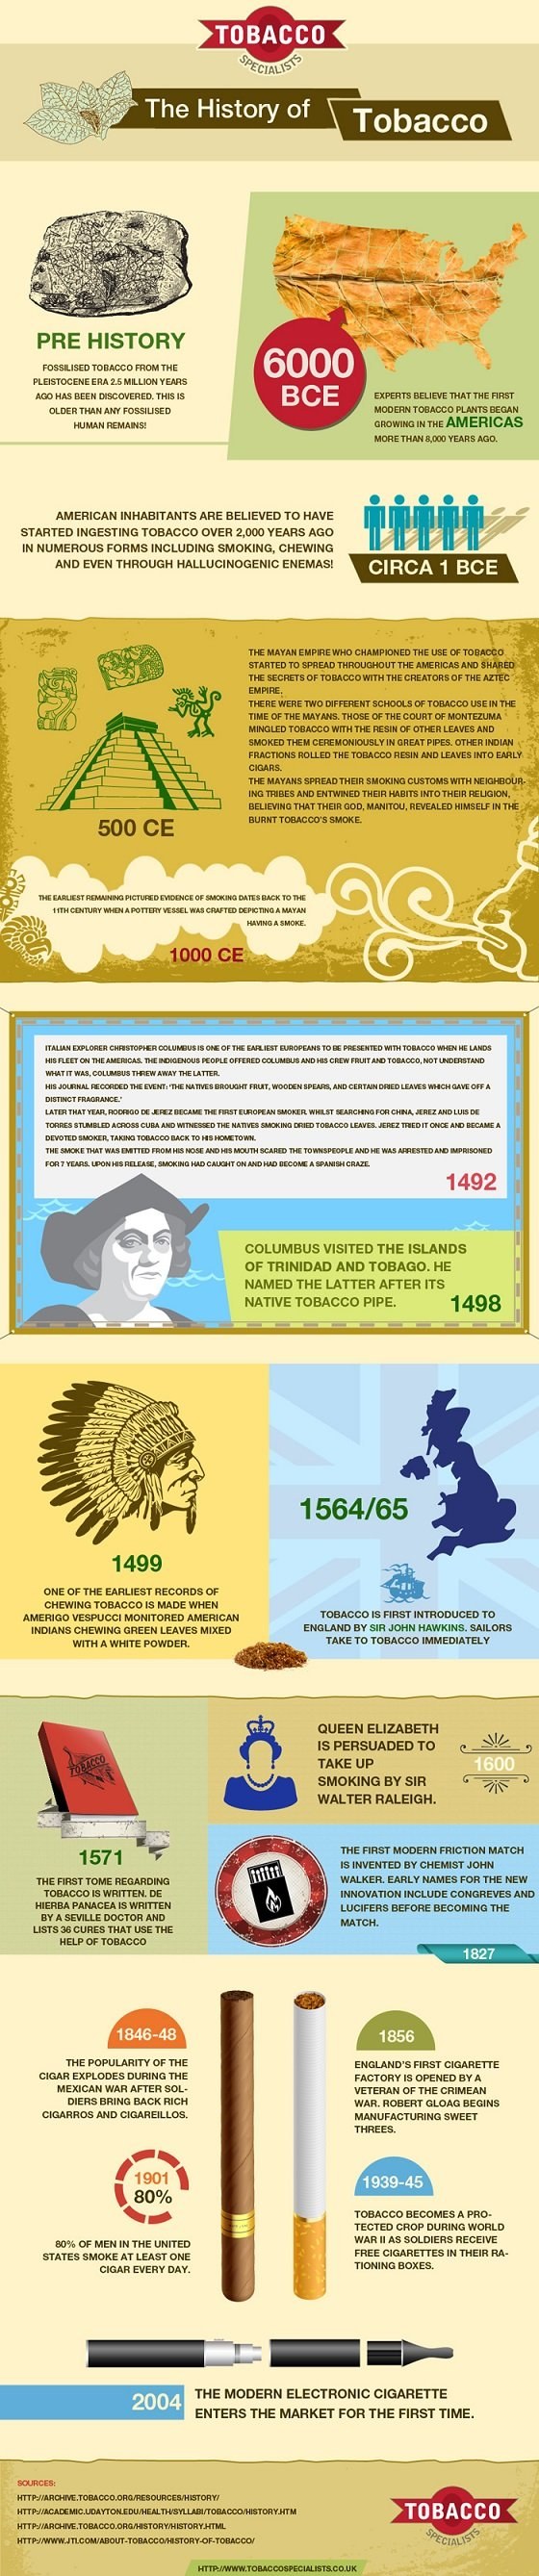 the history of tobacco